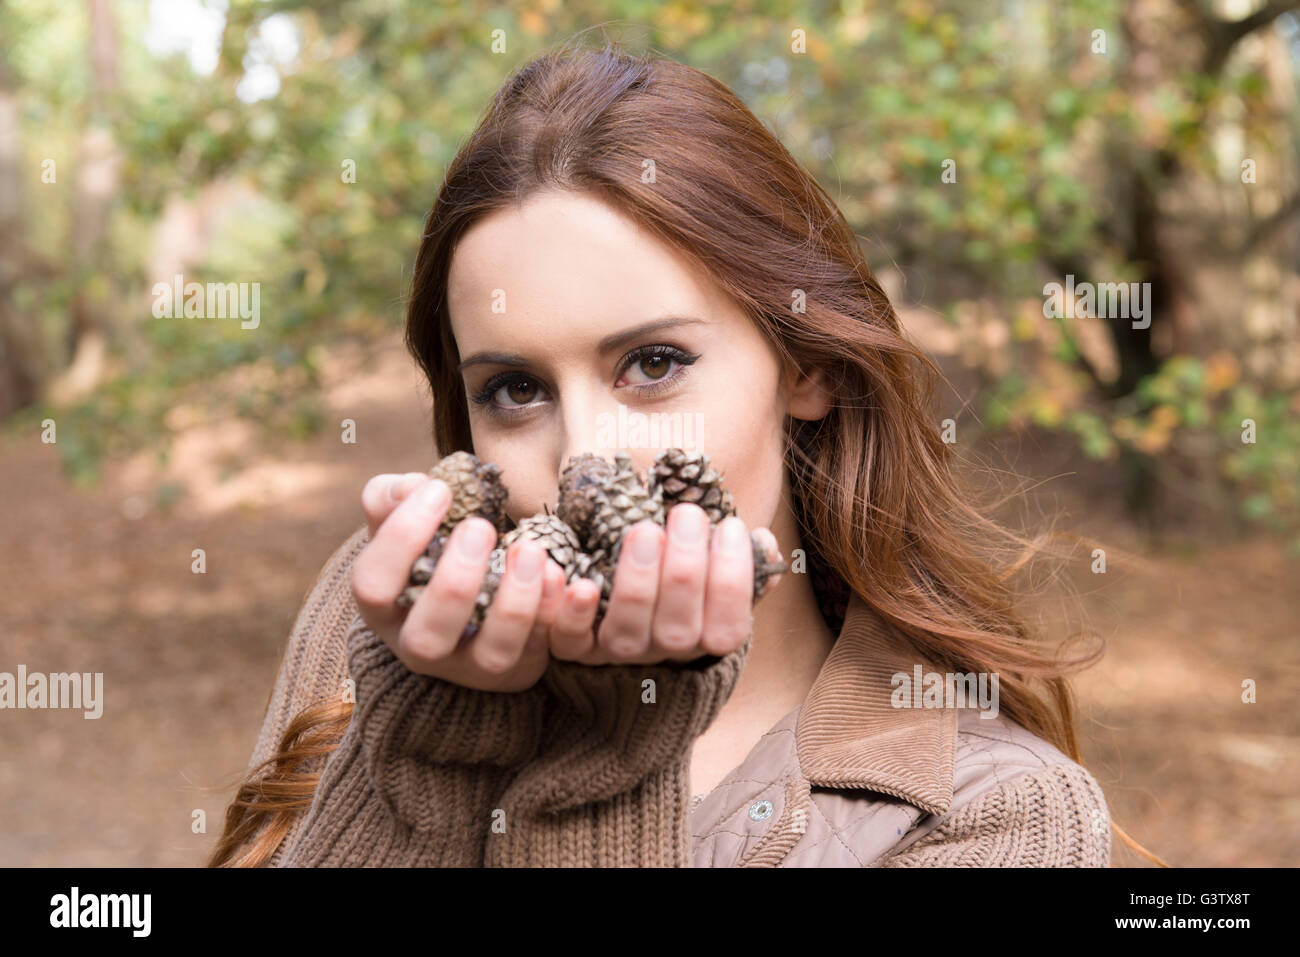 A young woman standing with a handful of pine cones in a forest in Autumn. - Stock Image